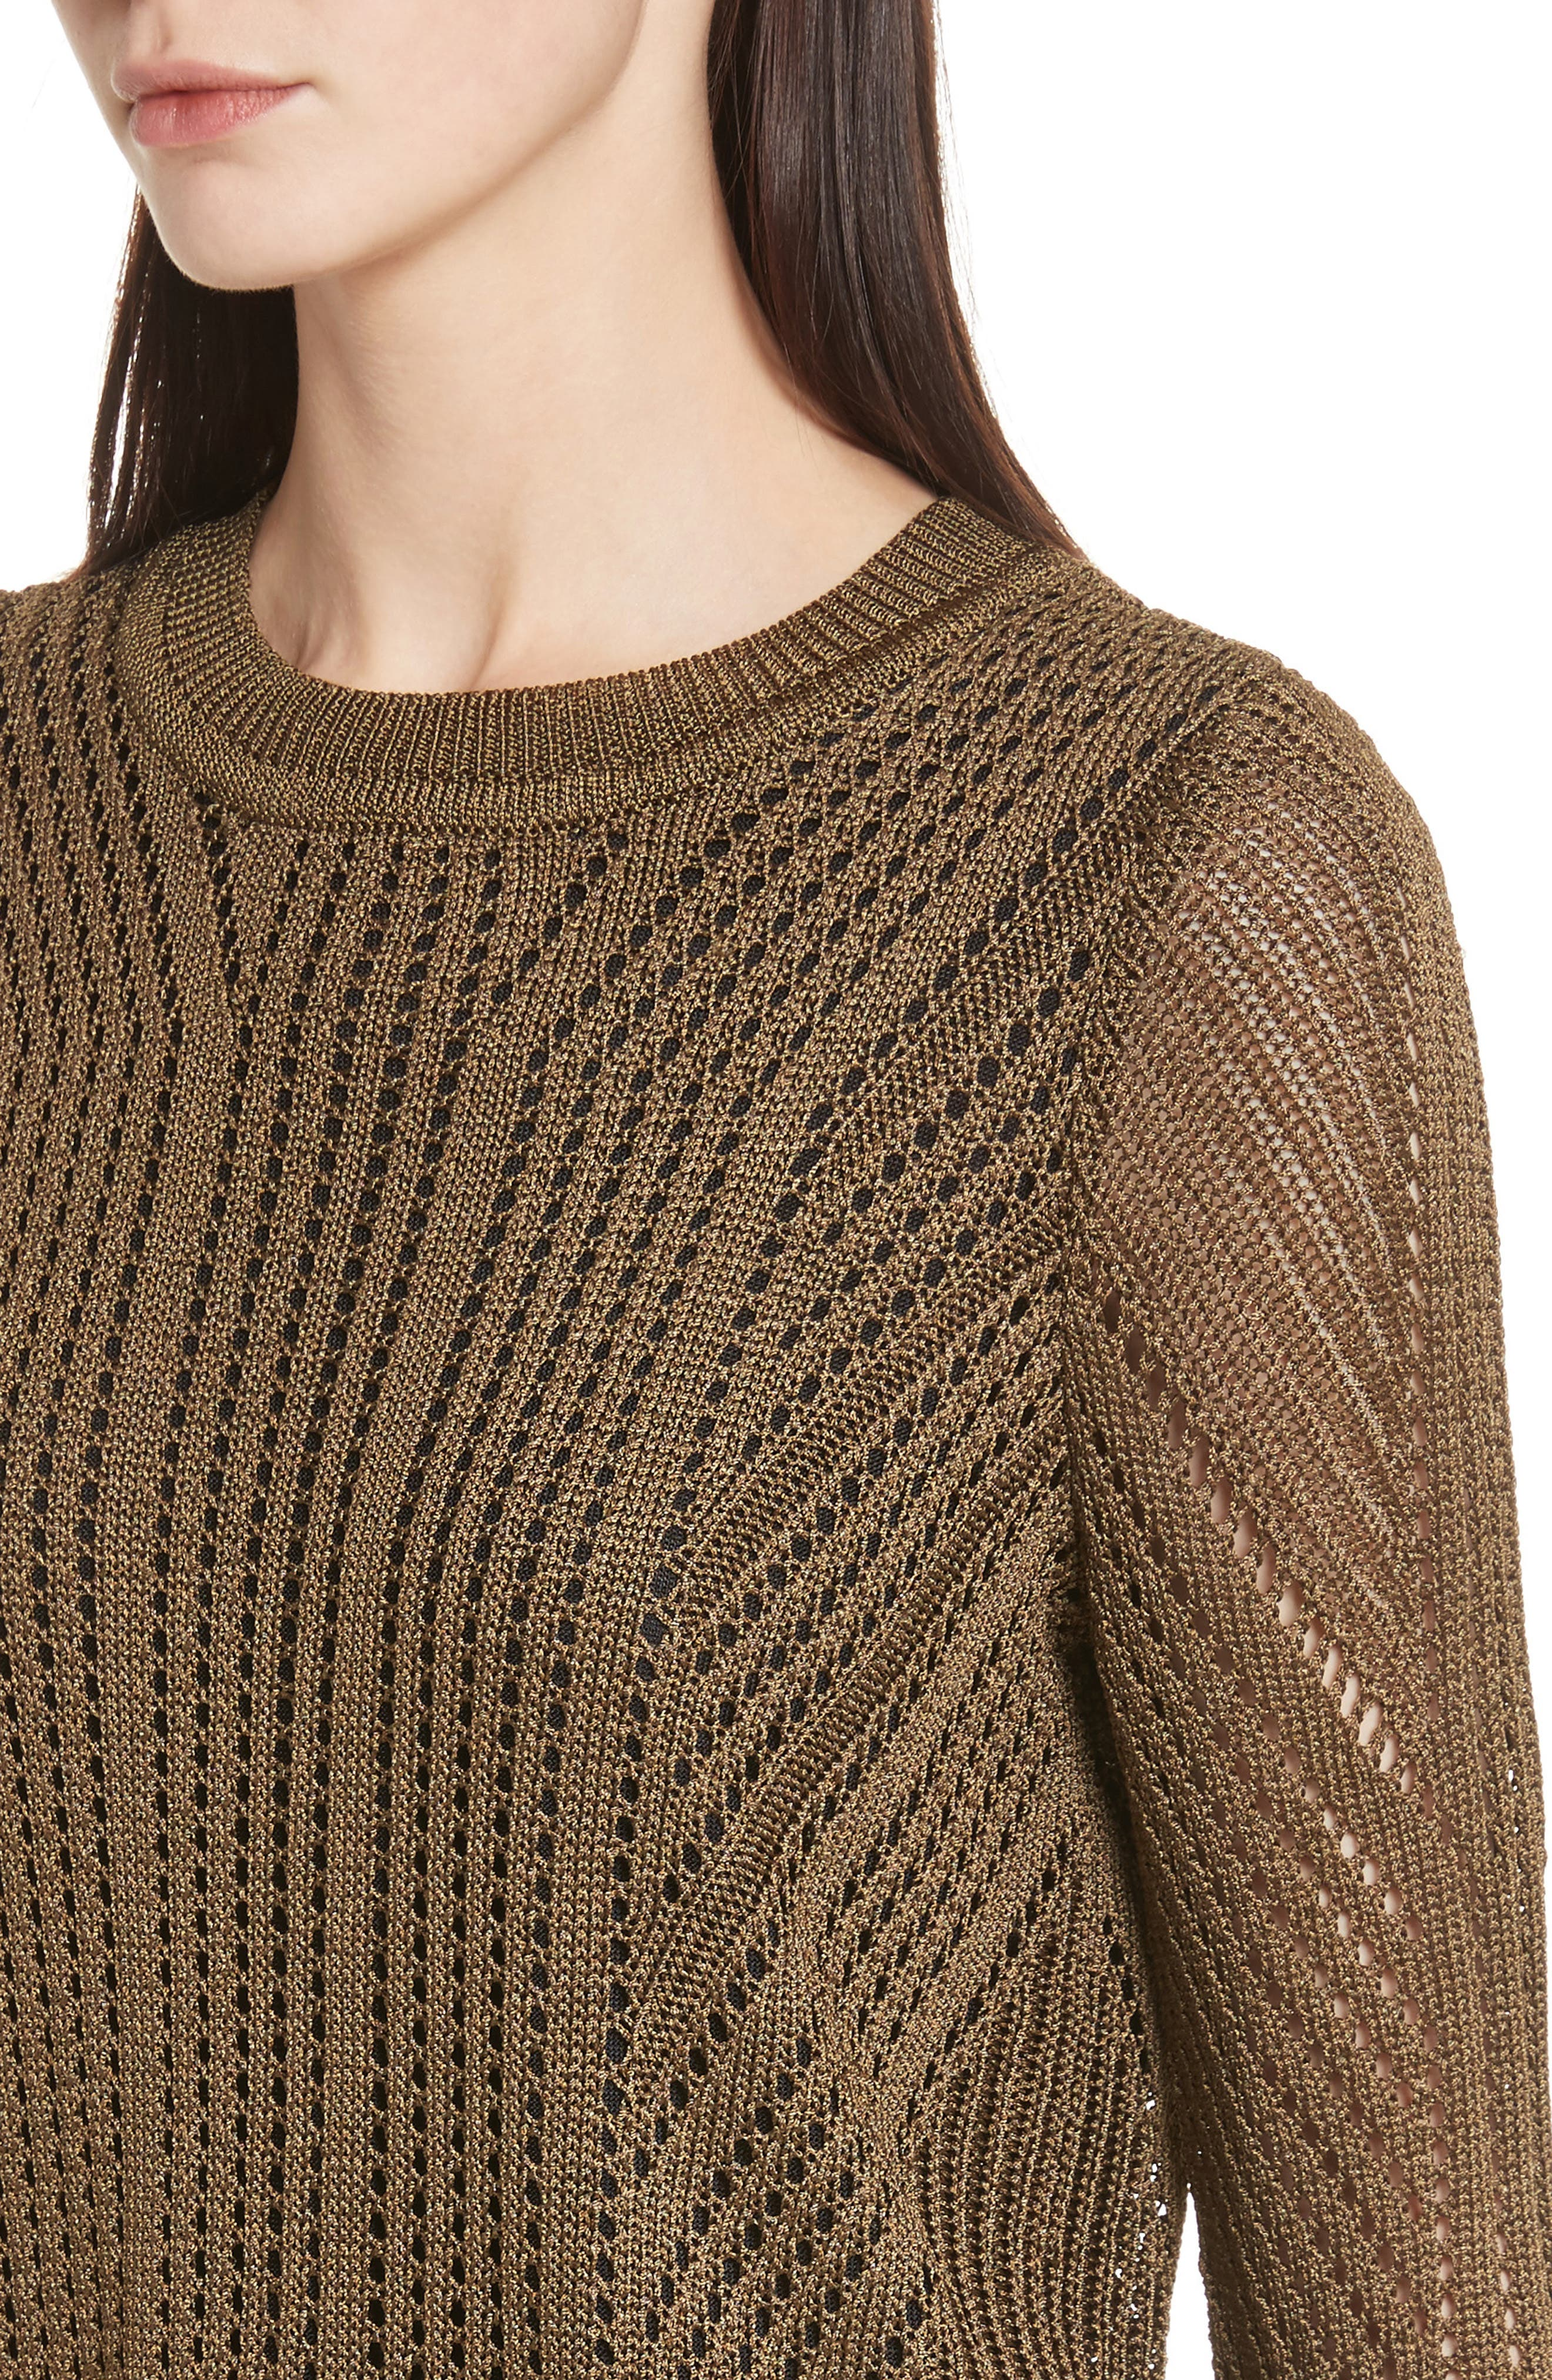 Pamela Crewneck Pointelle Sweater,                             Alternate thumbnail 8, color,